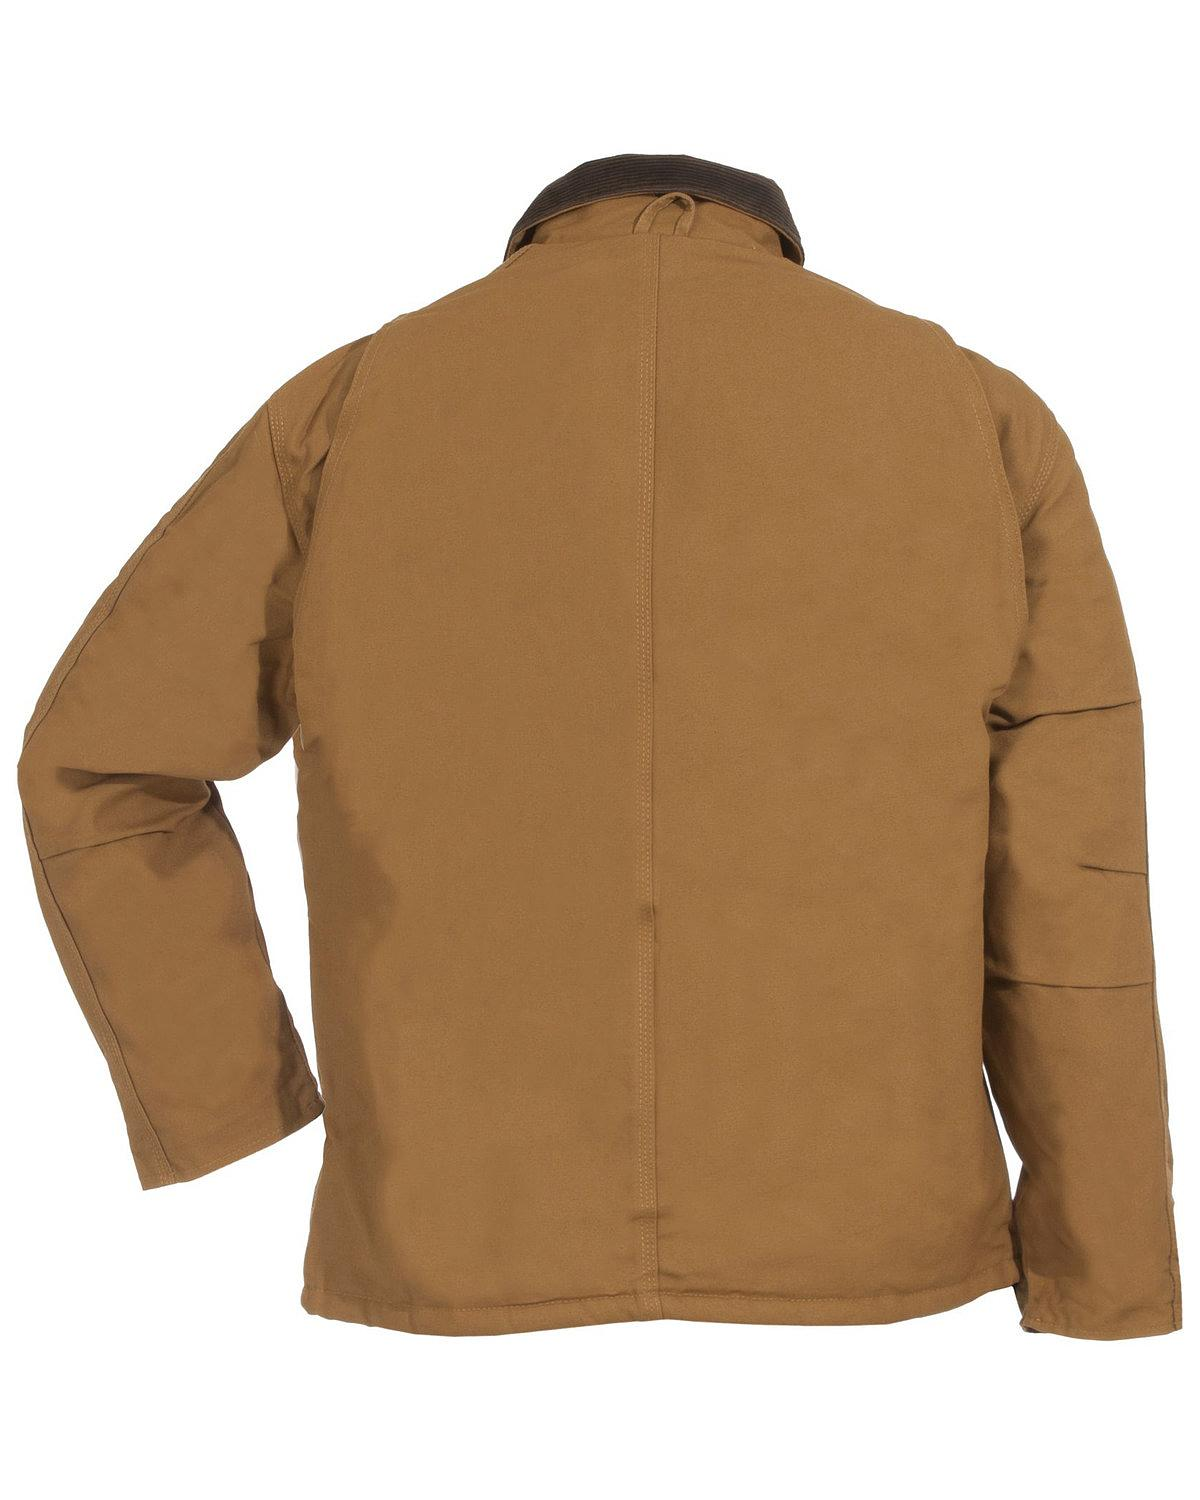 12a63492451 Berne Men s Duck Original Chore Coat Tall 2xt - Ch416bkt XLT Brown. About  this product. Picture 1 of 4  Picture 2 of 4  Picture 3 of 4  Picture 4 of 4